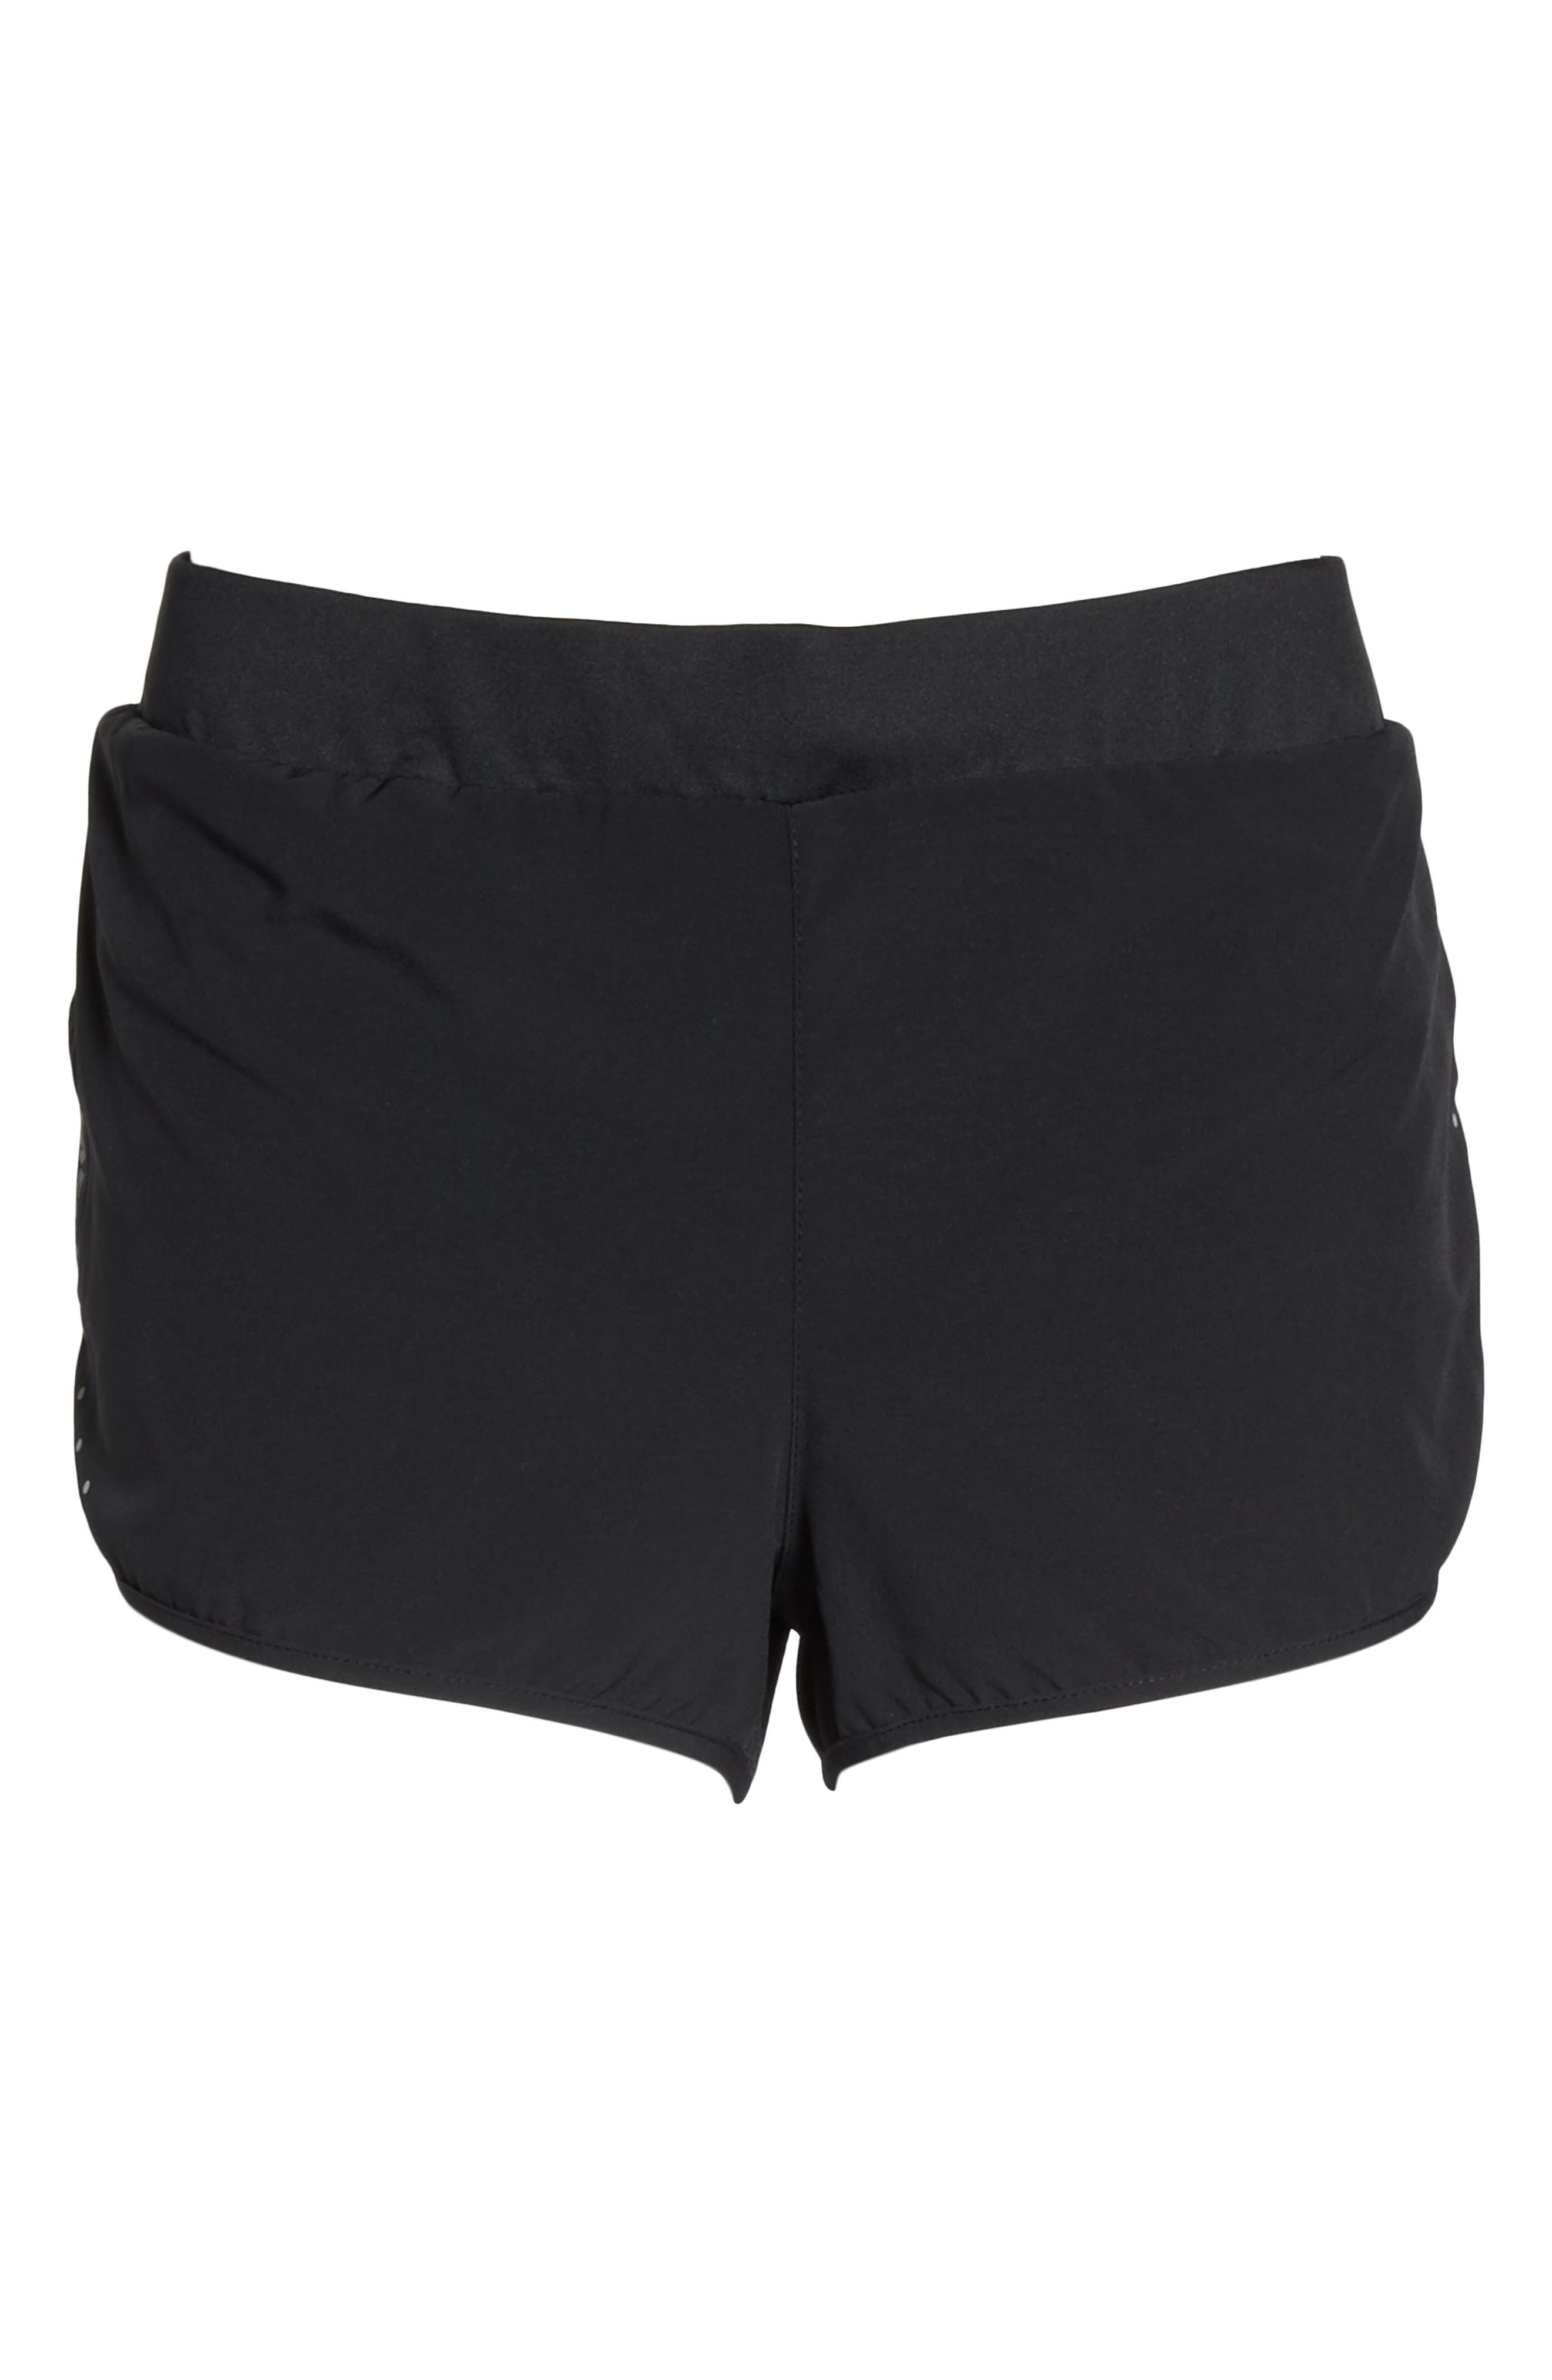 Essential Running Shorts,                             Alternate thumbnail 7, color,                             001